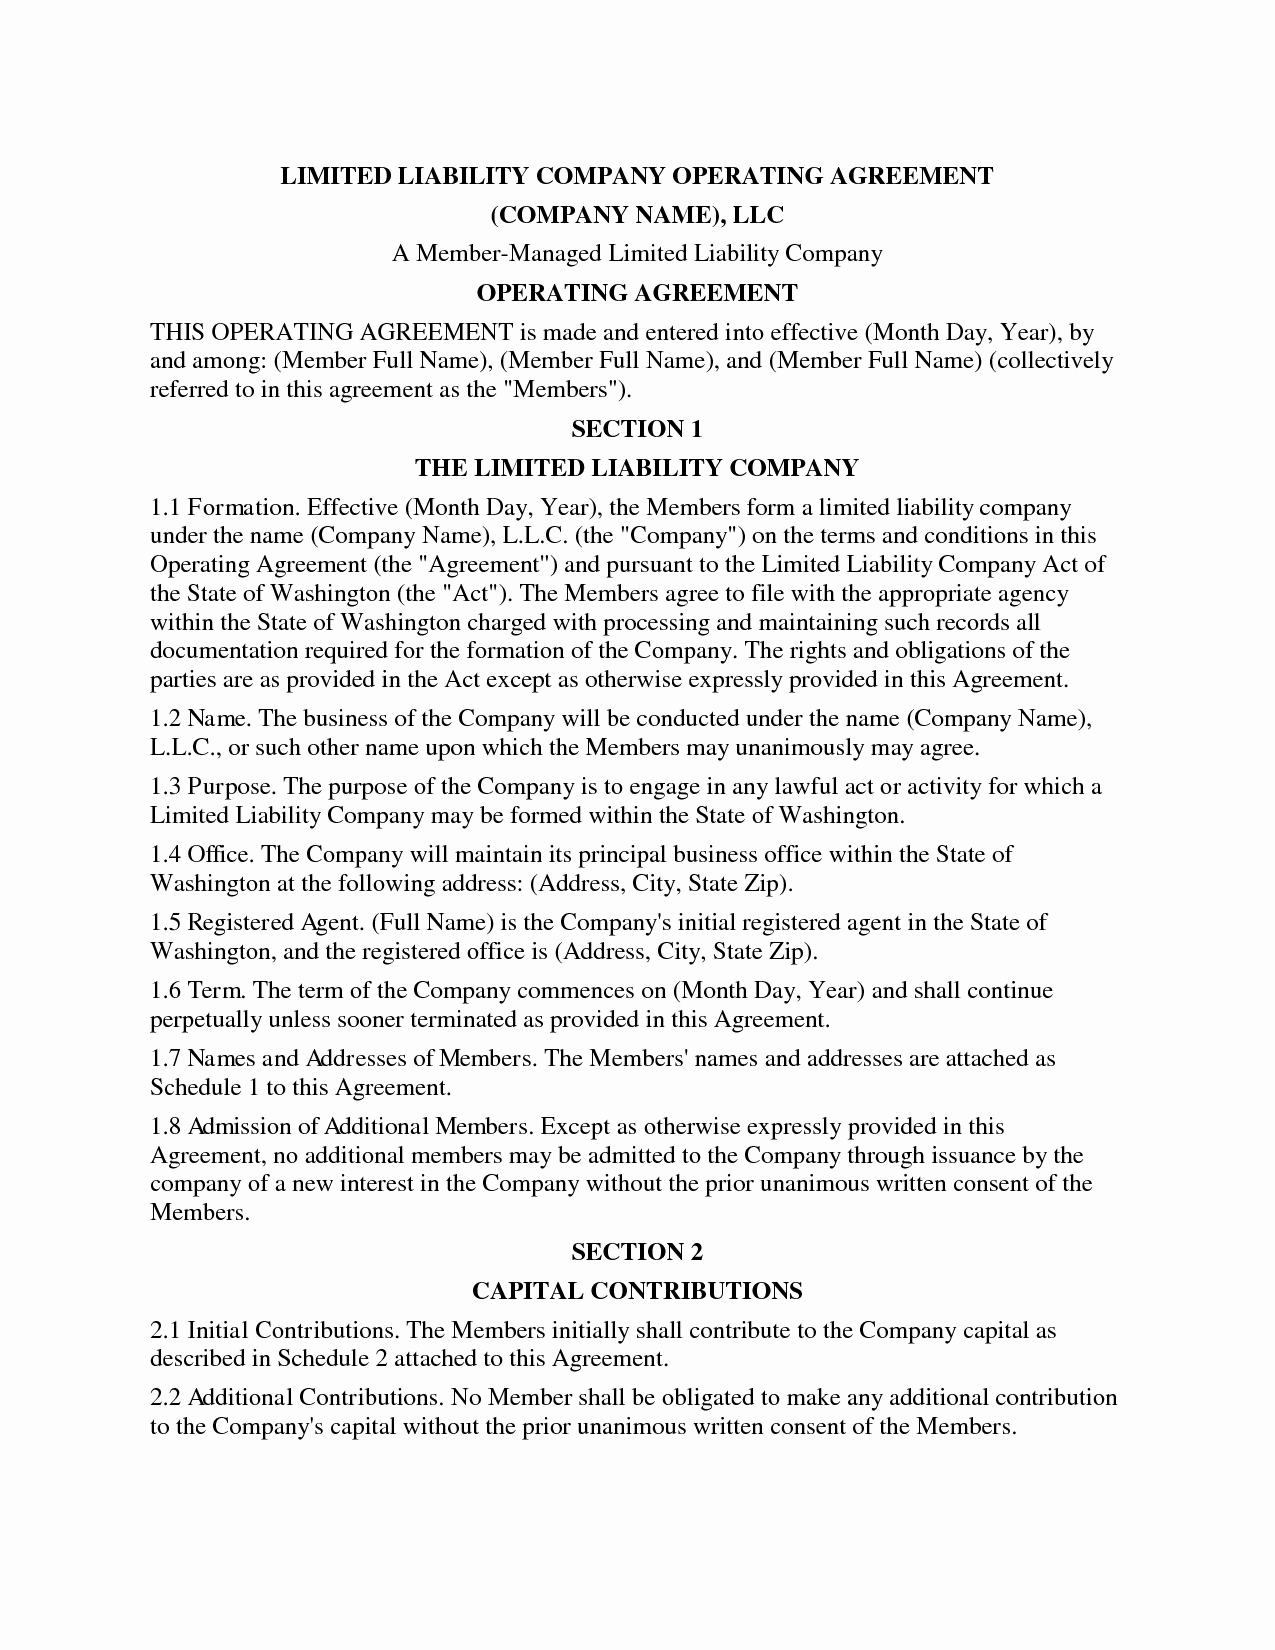 Cottage Operating Agreement Template New Llc Operating Agreement Template